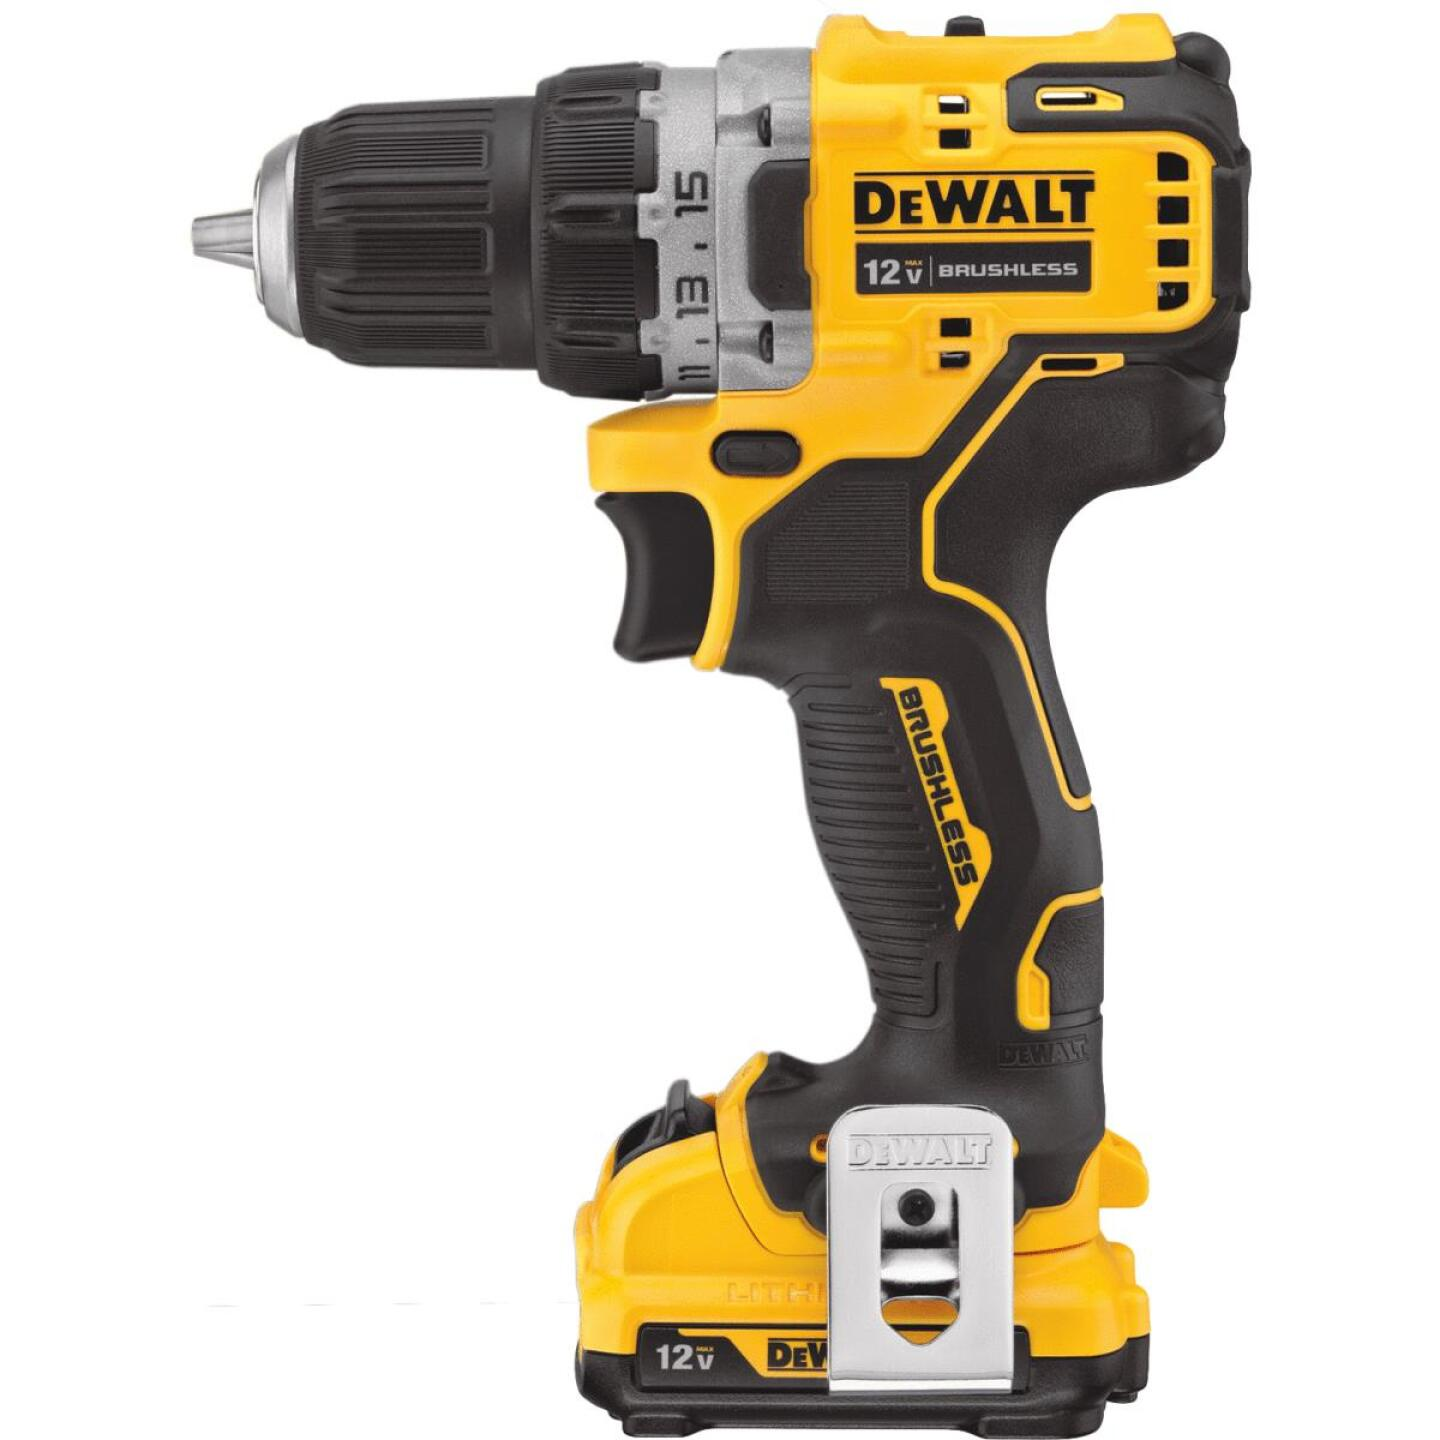 DeWalt XTREME 12 Volt MAX XR Lithium-Ion 3/8 In. Brushless Cordless Drill/Driver Kit Image 2